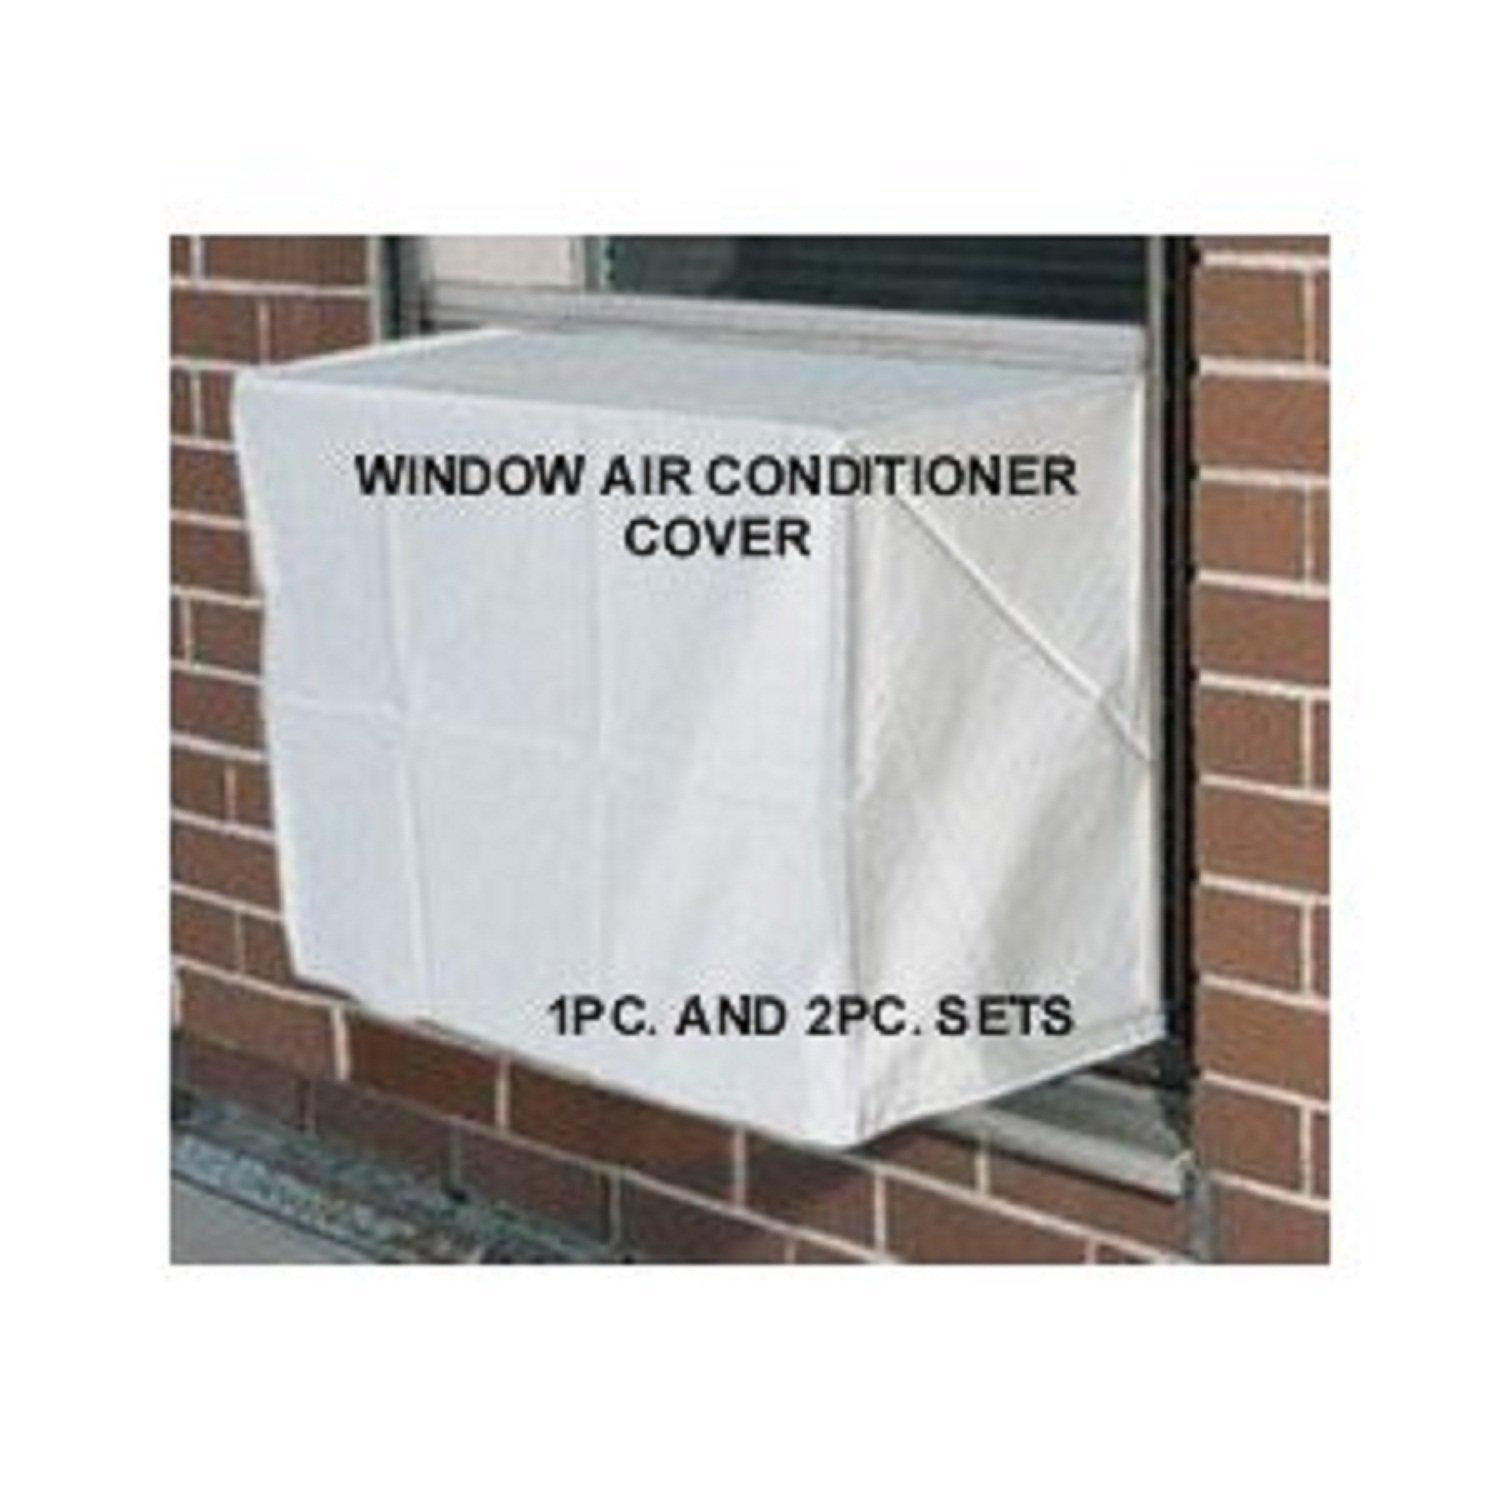 Window Air Conditioner Cover 2PC SET Outdoor Indoor 19W x 14H #7C5F4F